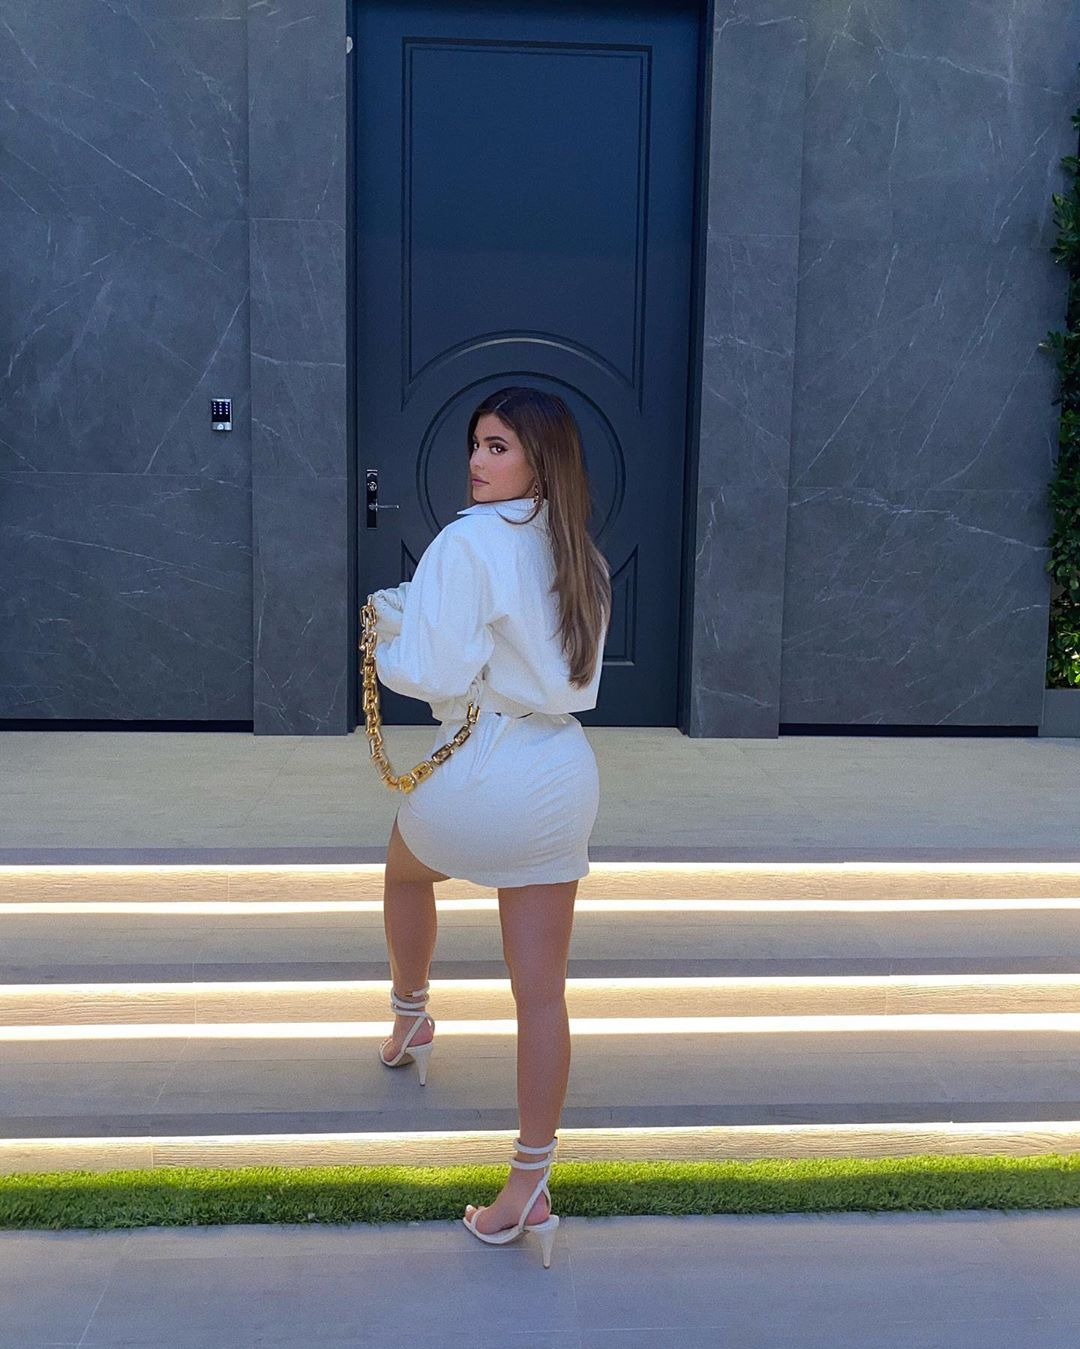 Kylie Jenner wearing a Oversized white leather mini shirt dress with a leather material, extra long sleeves and shirt collar